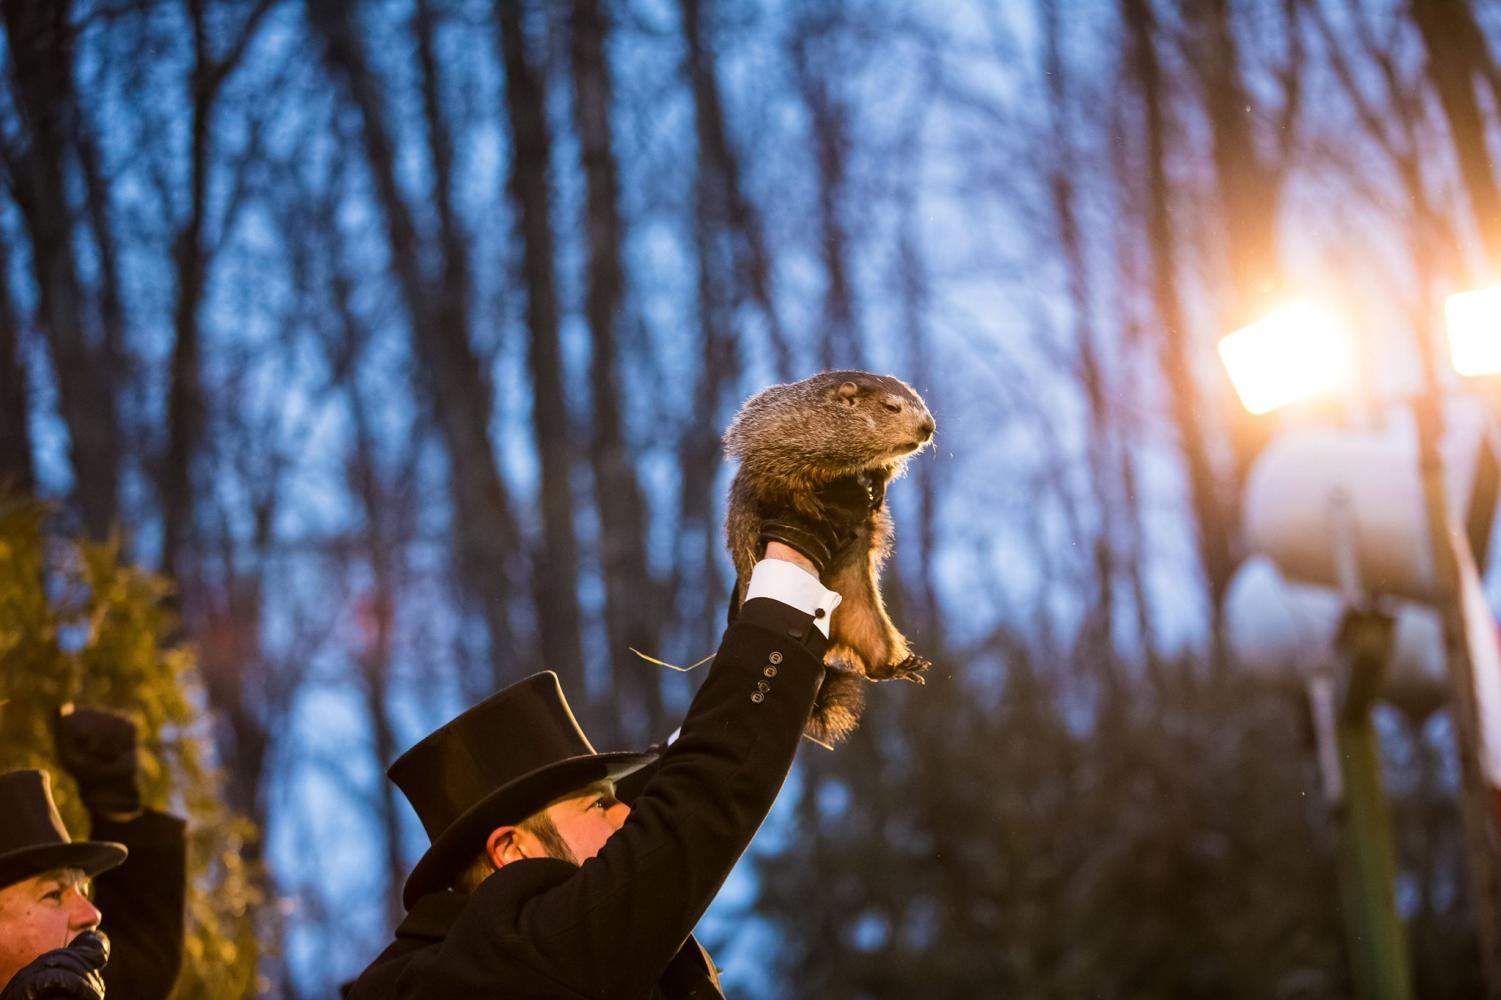 Punxsutawney Phil is raised into the air on Groundhog Day in Punxsutawney, Pennsylvania. According to ancient German traditions, if the groundhog comes out of his hole and does not see his shadow, spring will come early.